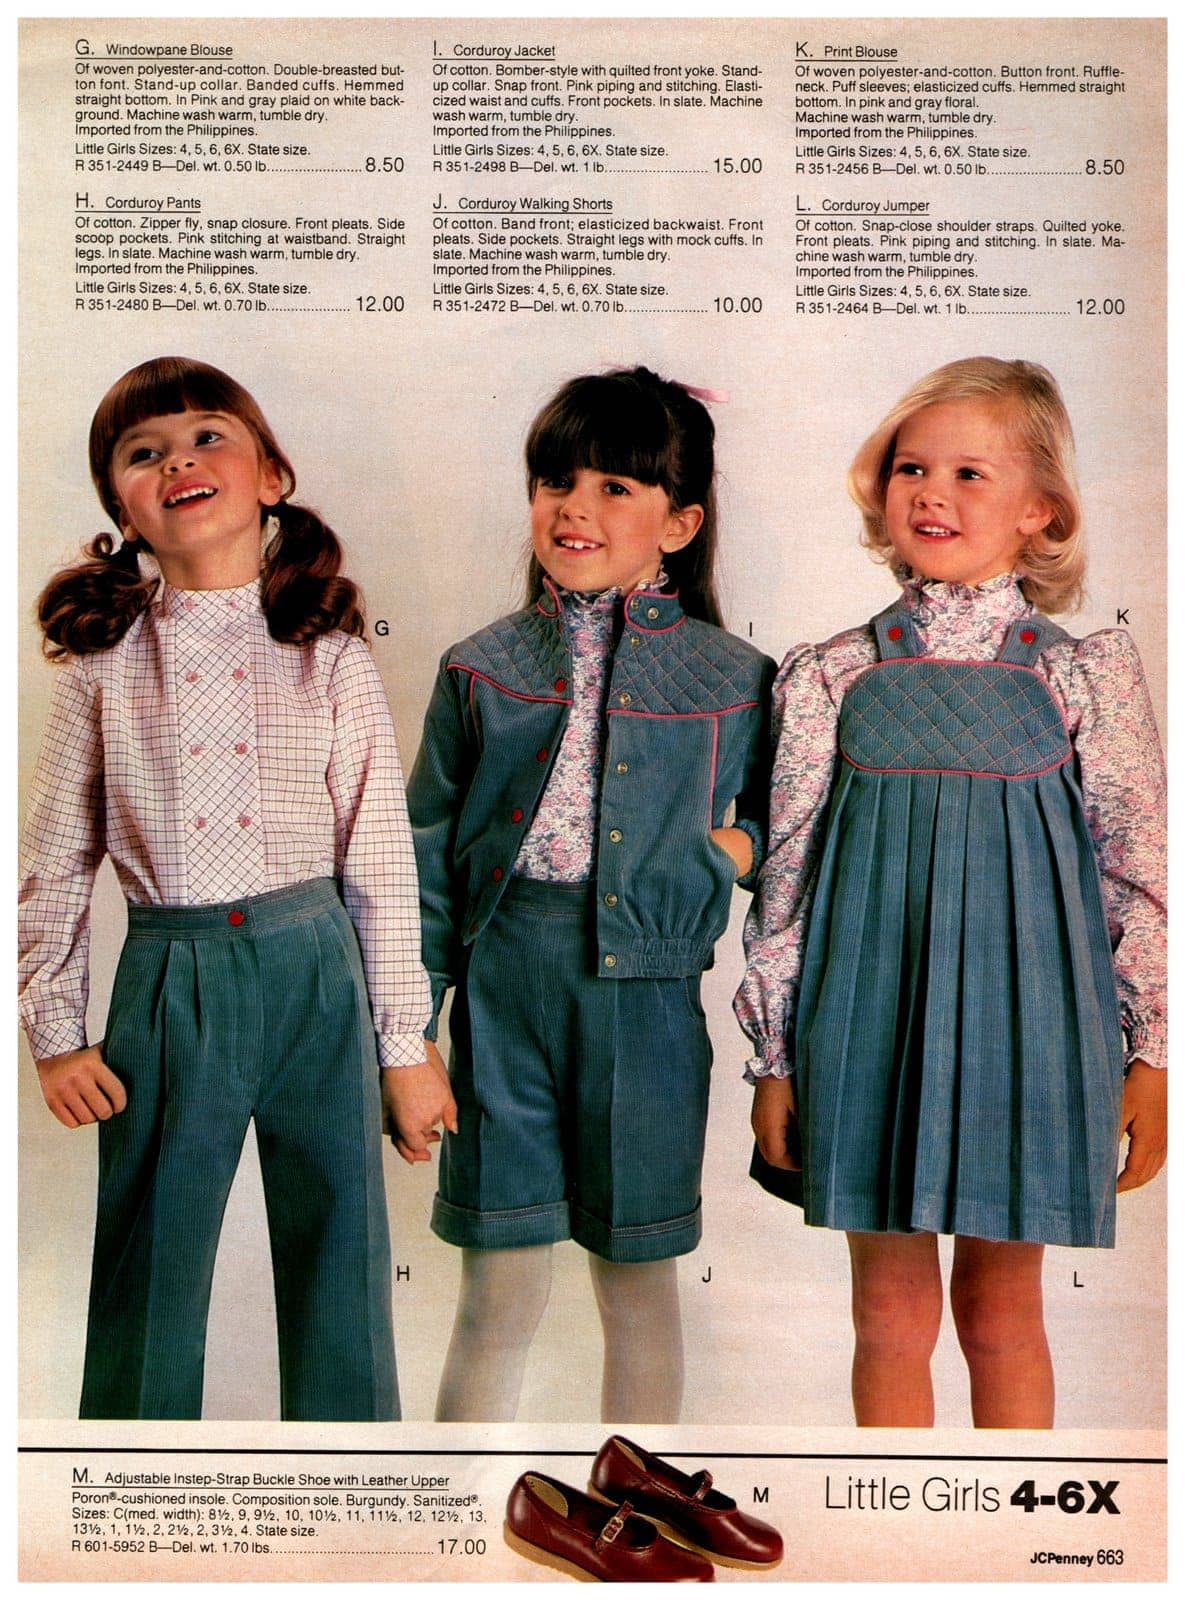 Windowpane blouses, print blouses, and corduroy pants, shorts, jackets and jumpers